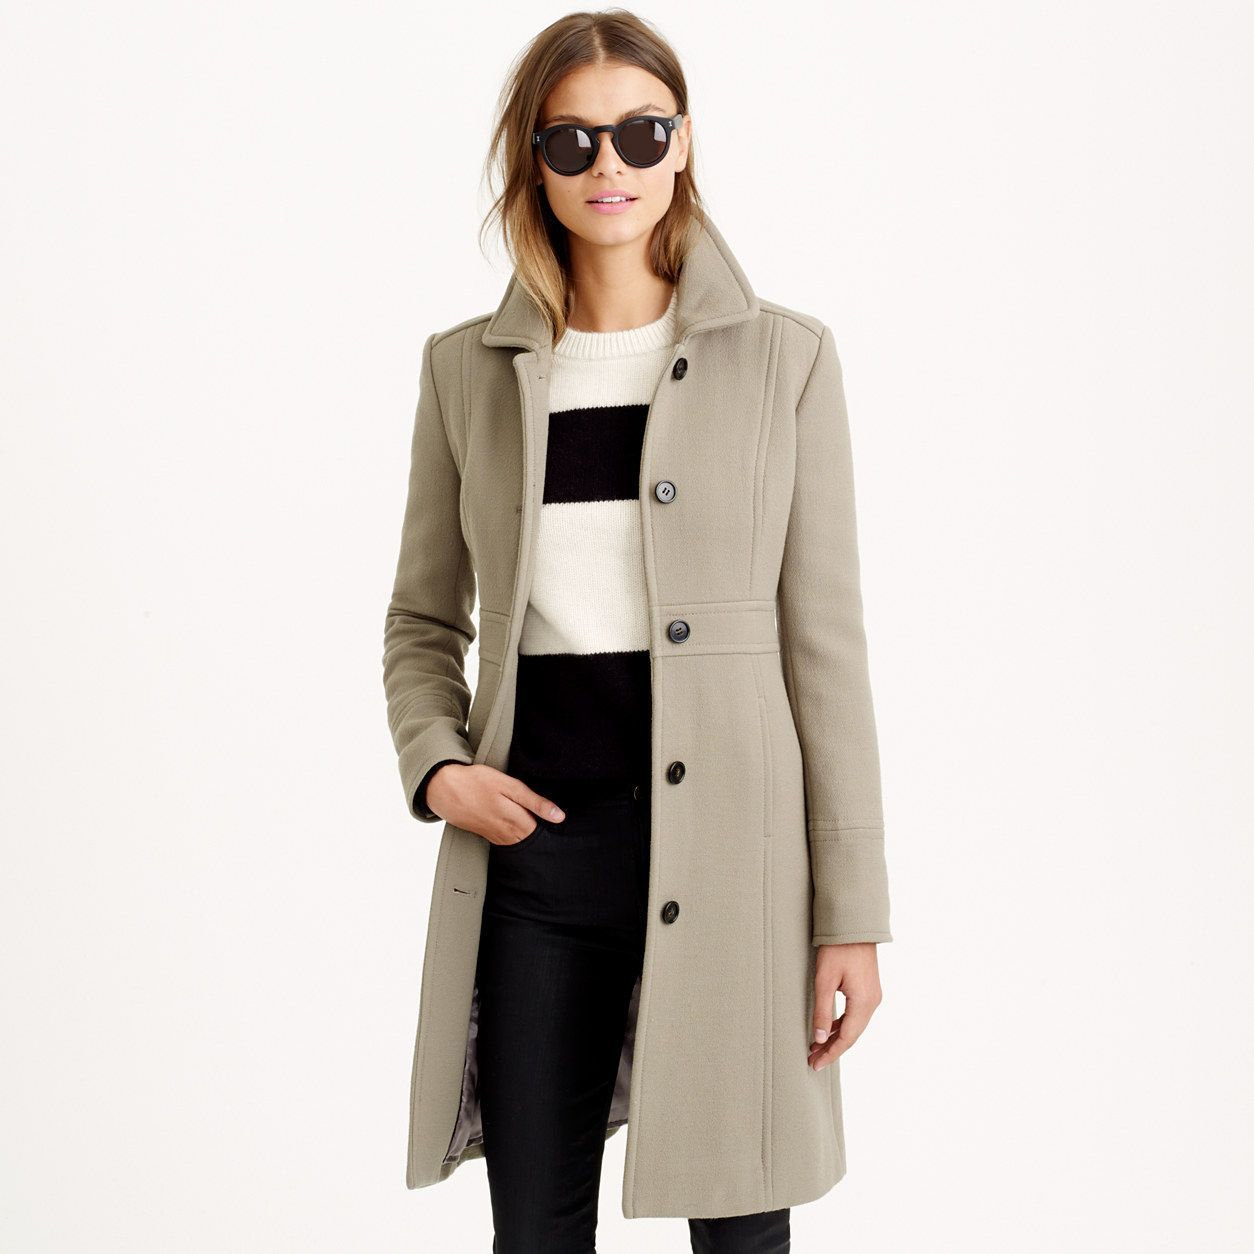 ec0542e3870c1 J.Crew Womens Petite Italian Double-Cloth Wool Lady Day Coat With  Thinsulate (Size 6 Petite)